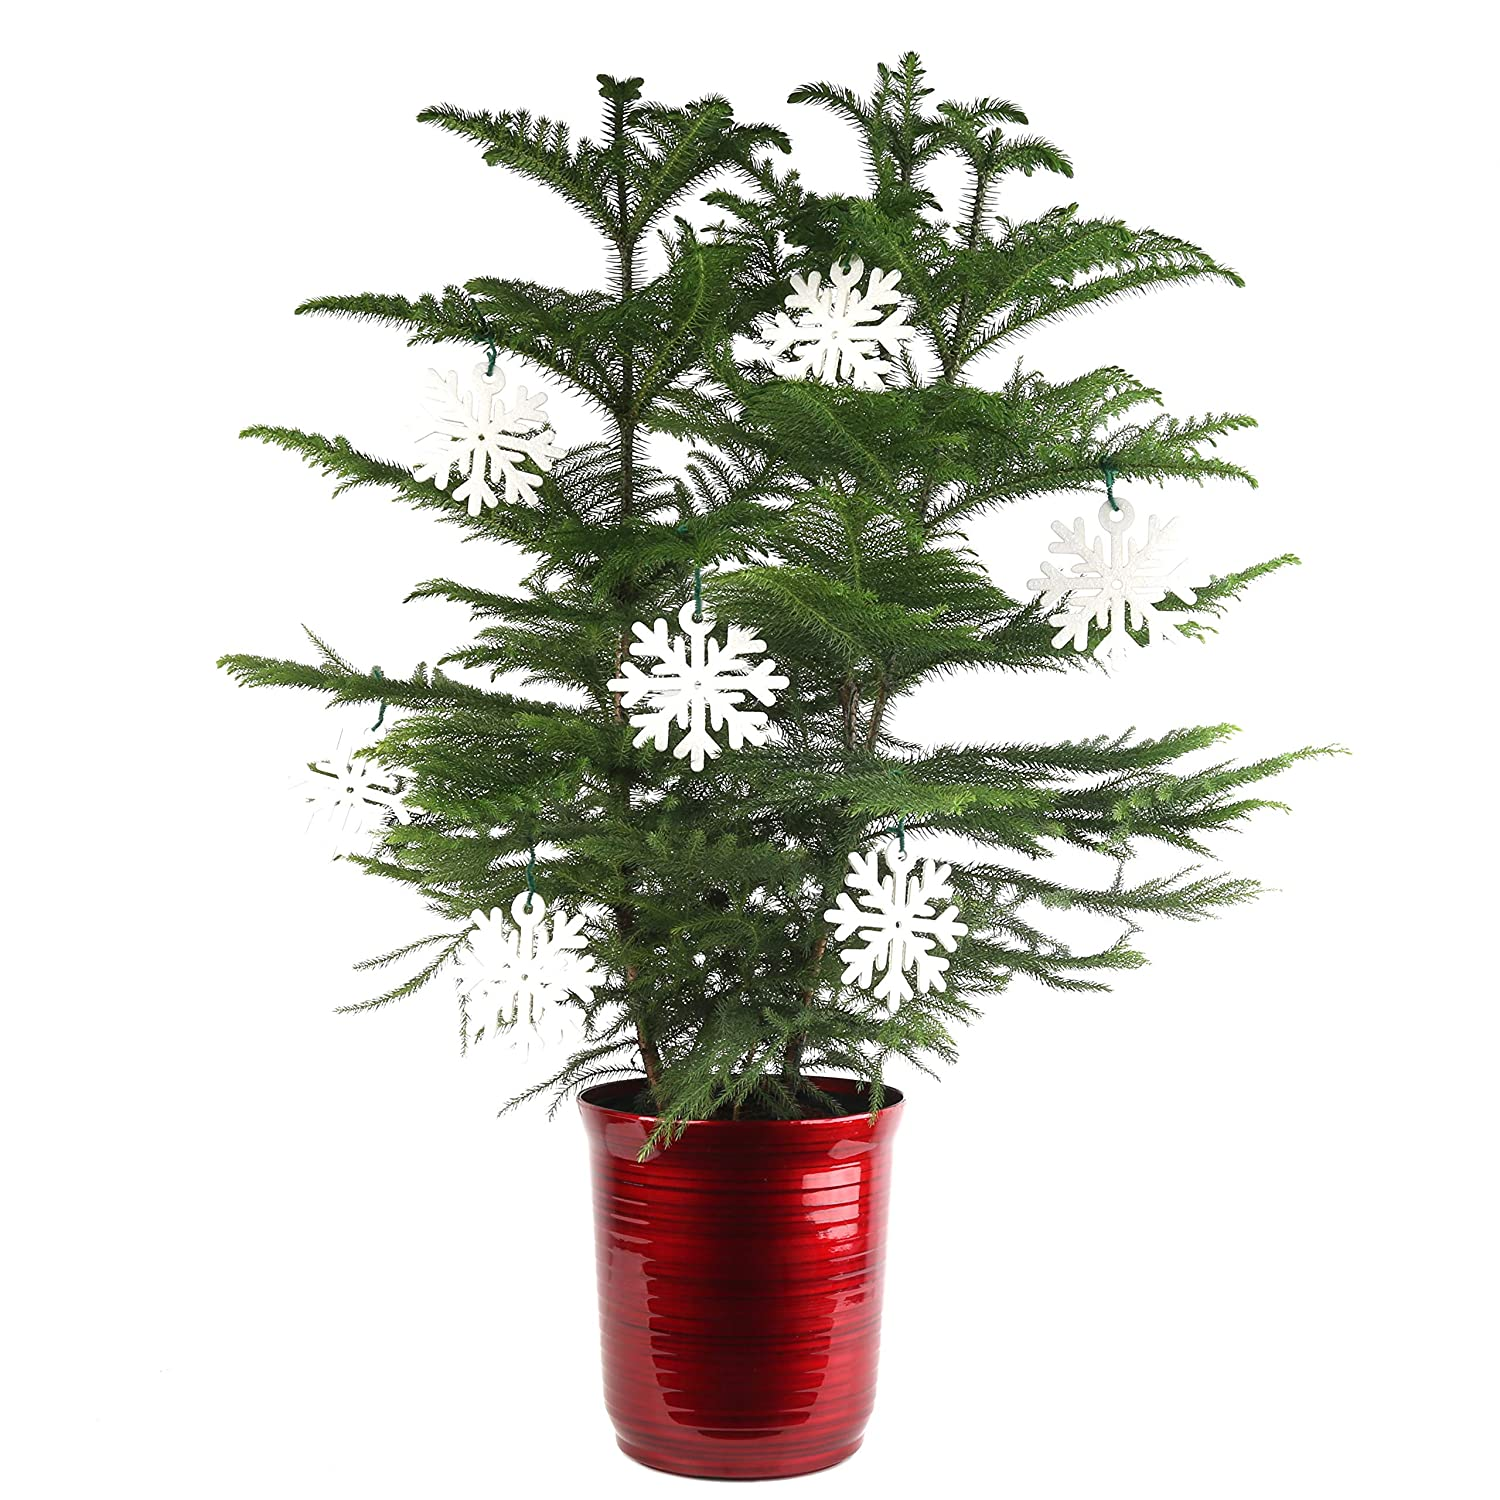 Tabletop Christmas Trees Advice On Selecting From Available Types And Varieties In Home Grown At Farmers Market Online